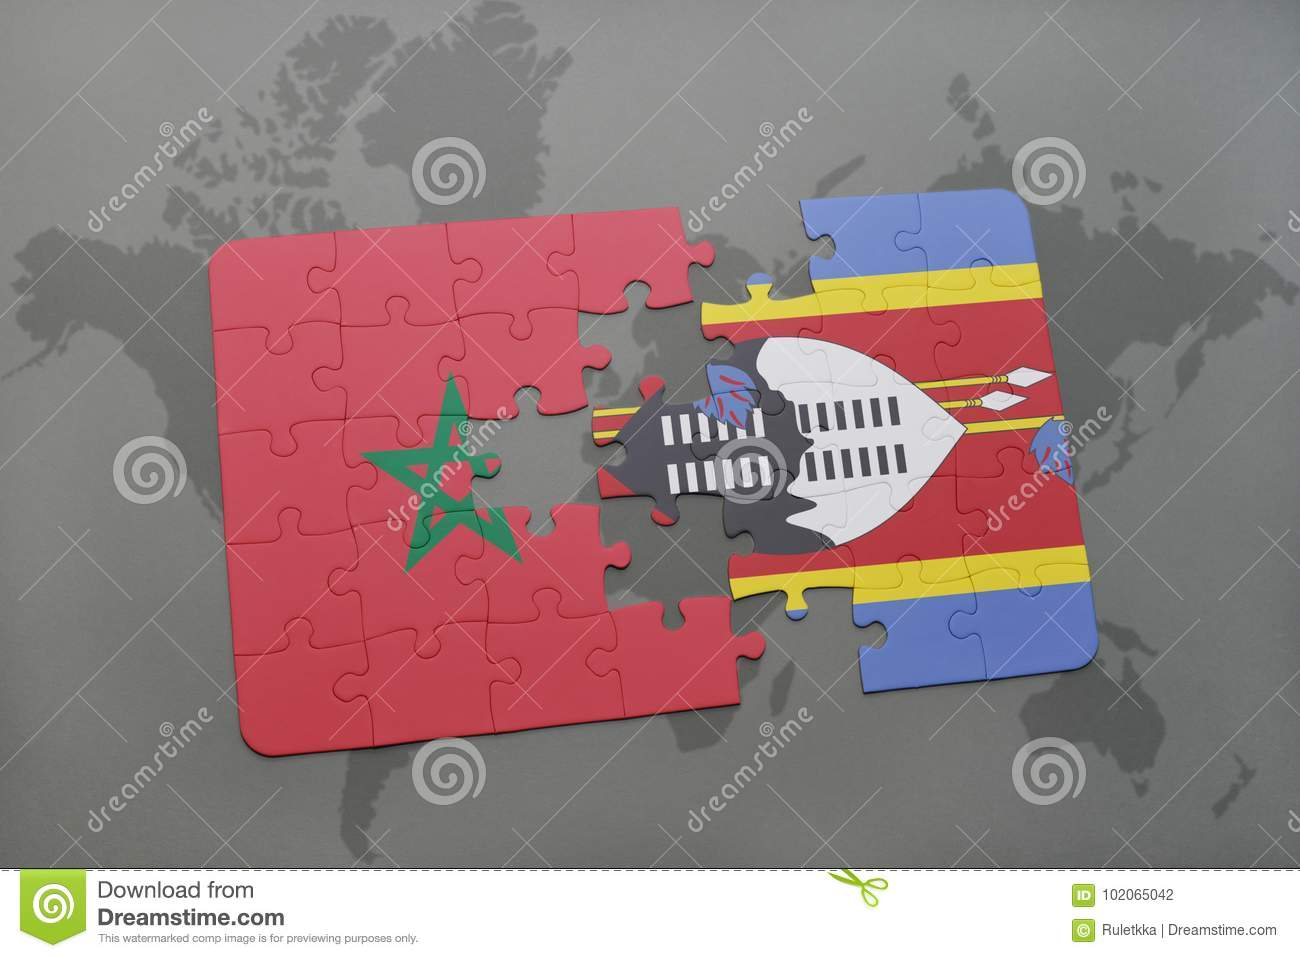 puzzle with the national flag of morocco and swaziland on a world map